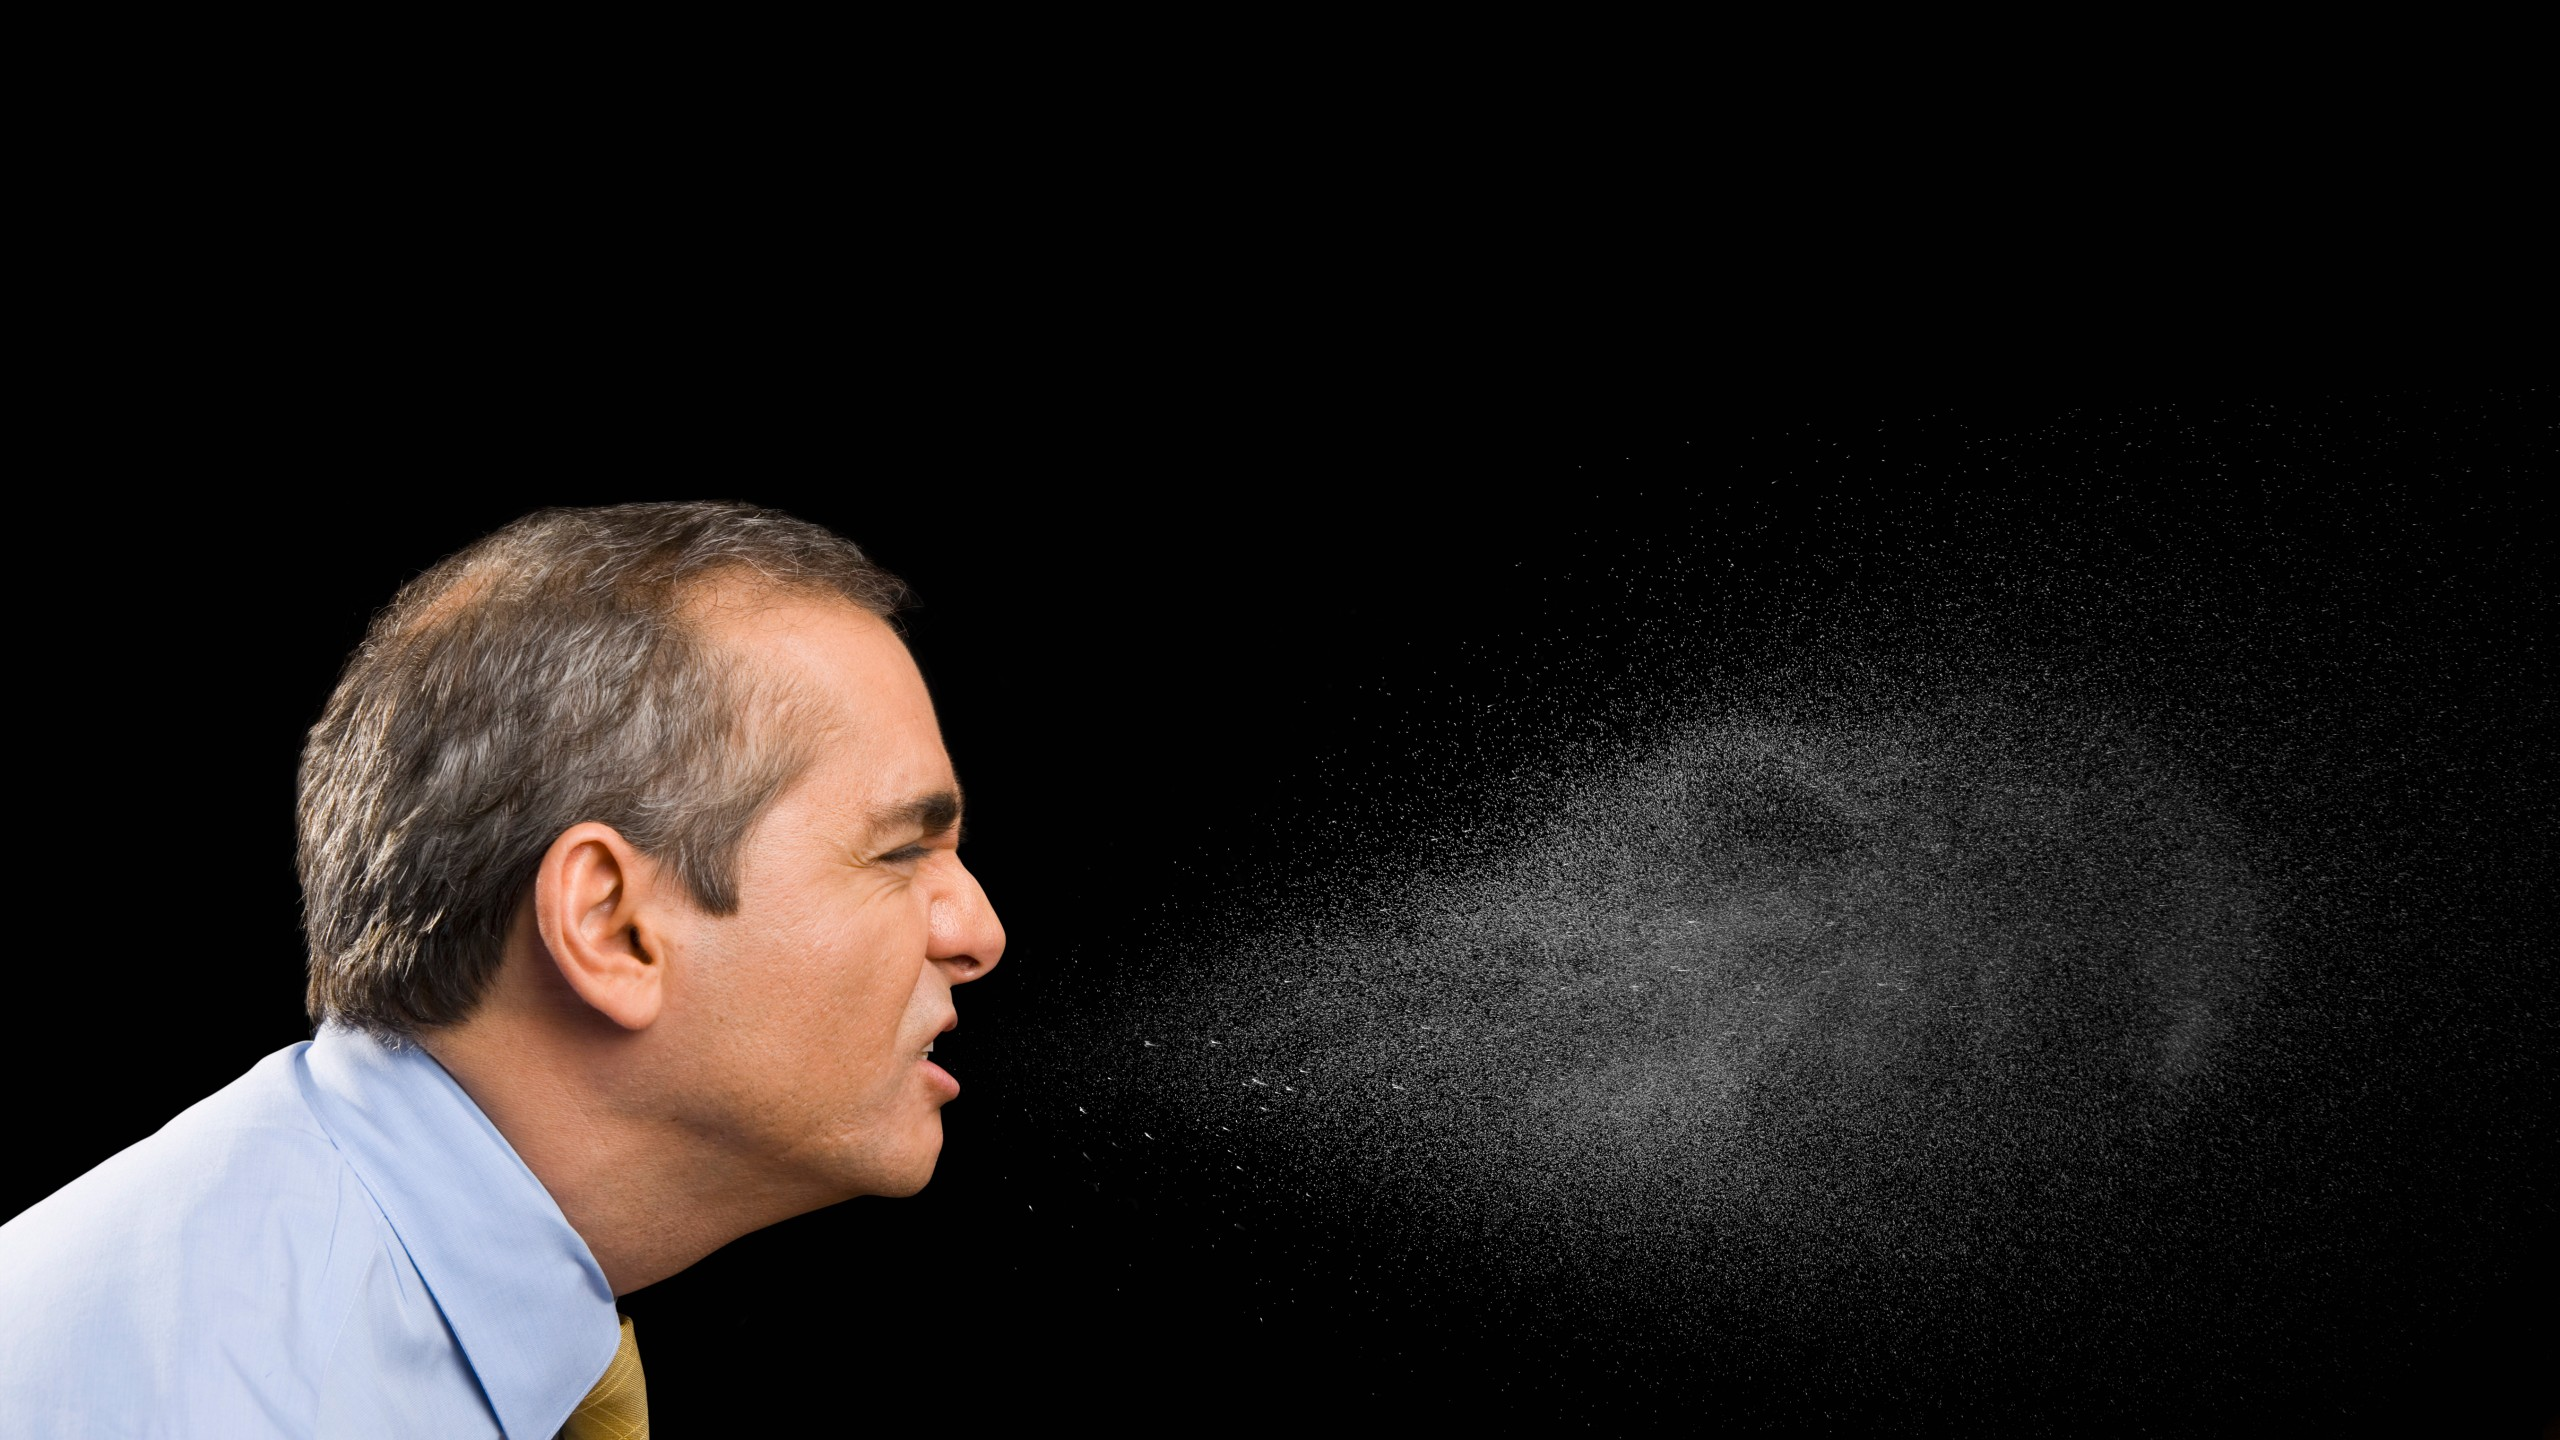 Sneeze (Getty Images)